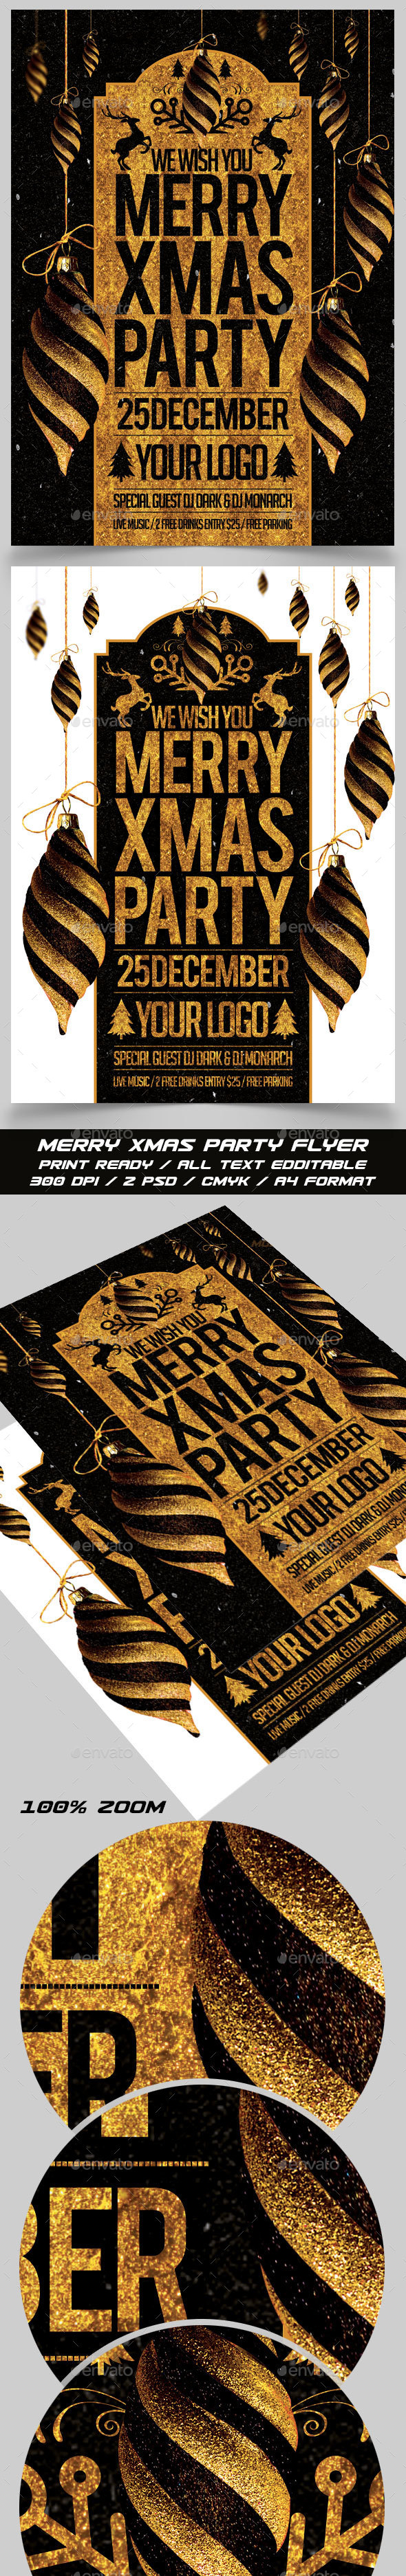 Merry Xmas Party Flyer - Events Flyers